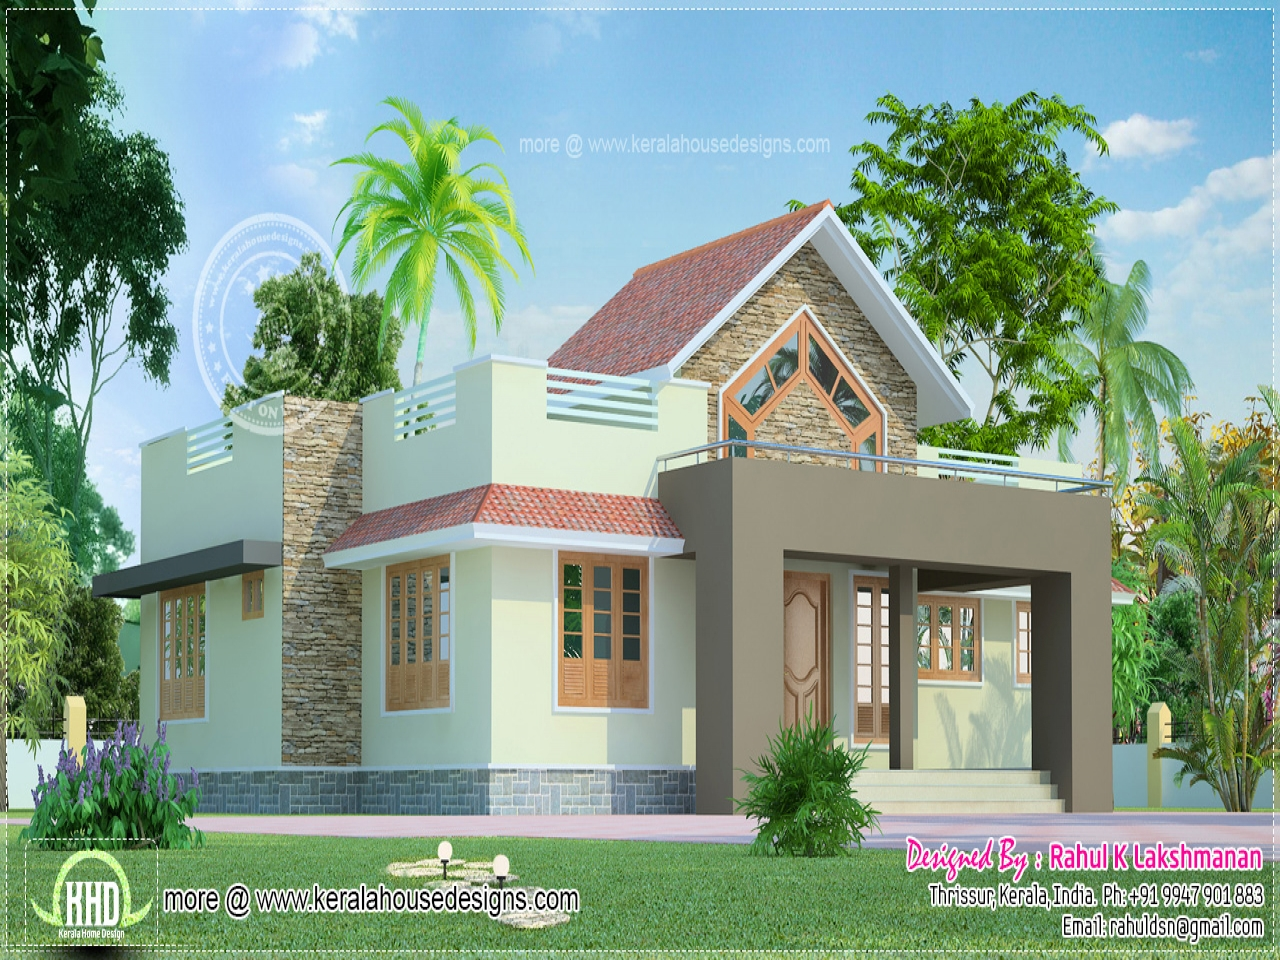 one floor house exterior design small suburban house lrg b7e778e2d0f626e3 - View Small House Home Front Design Ground Floor Pics